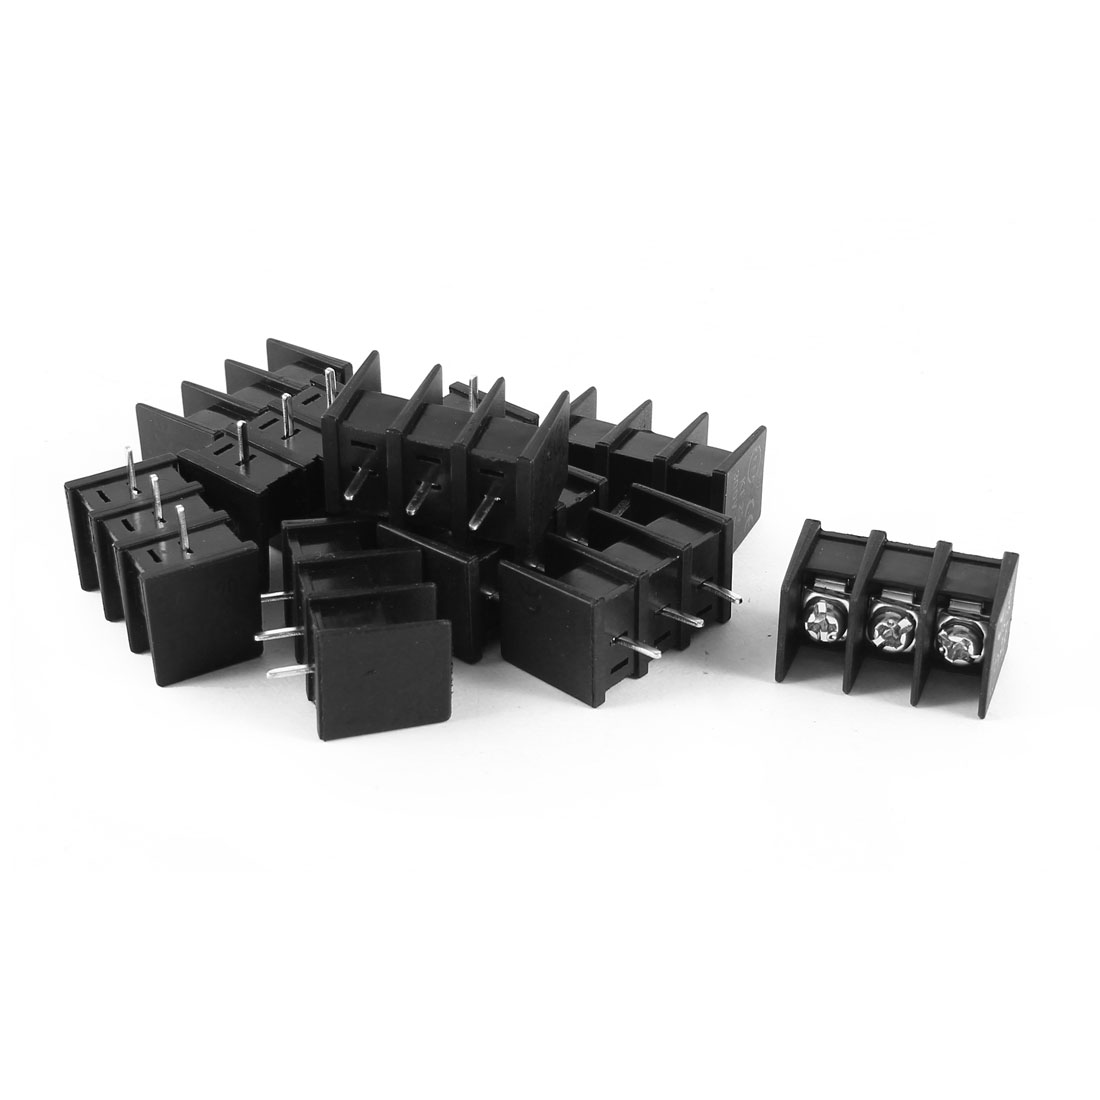 10 Pcs KF25C-3P 3P 7.62mm Pitch Wire Connector Screw Terminal Barrier Blocks 300V 20A